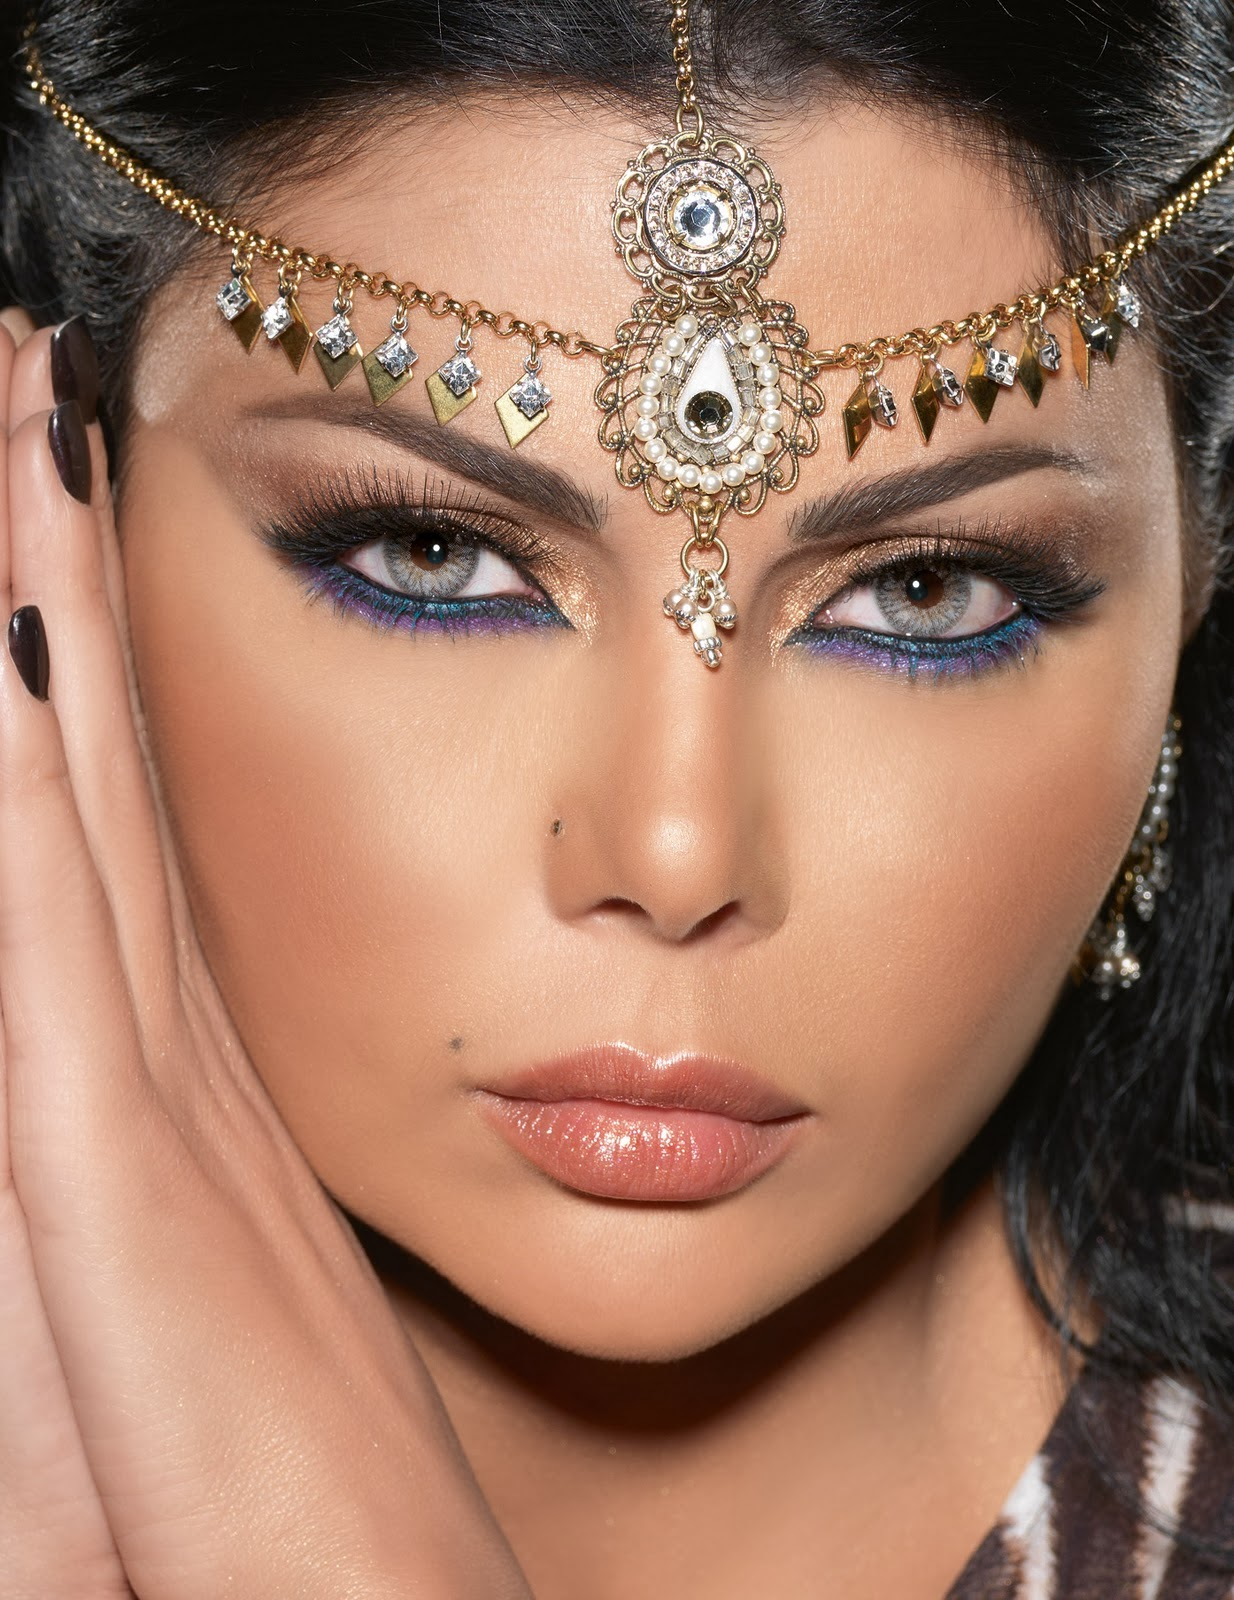 Now I will show you how I do Middle East Women Eyes